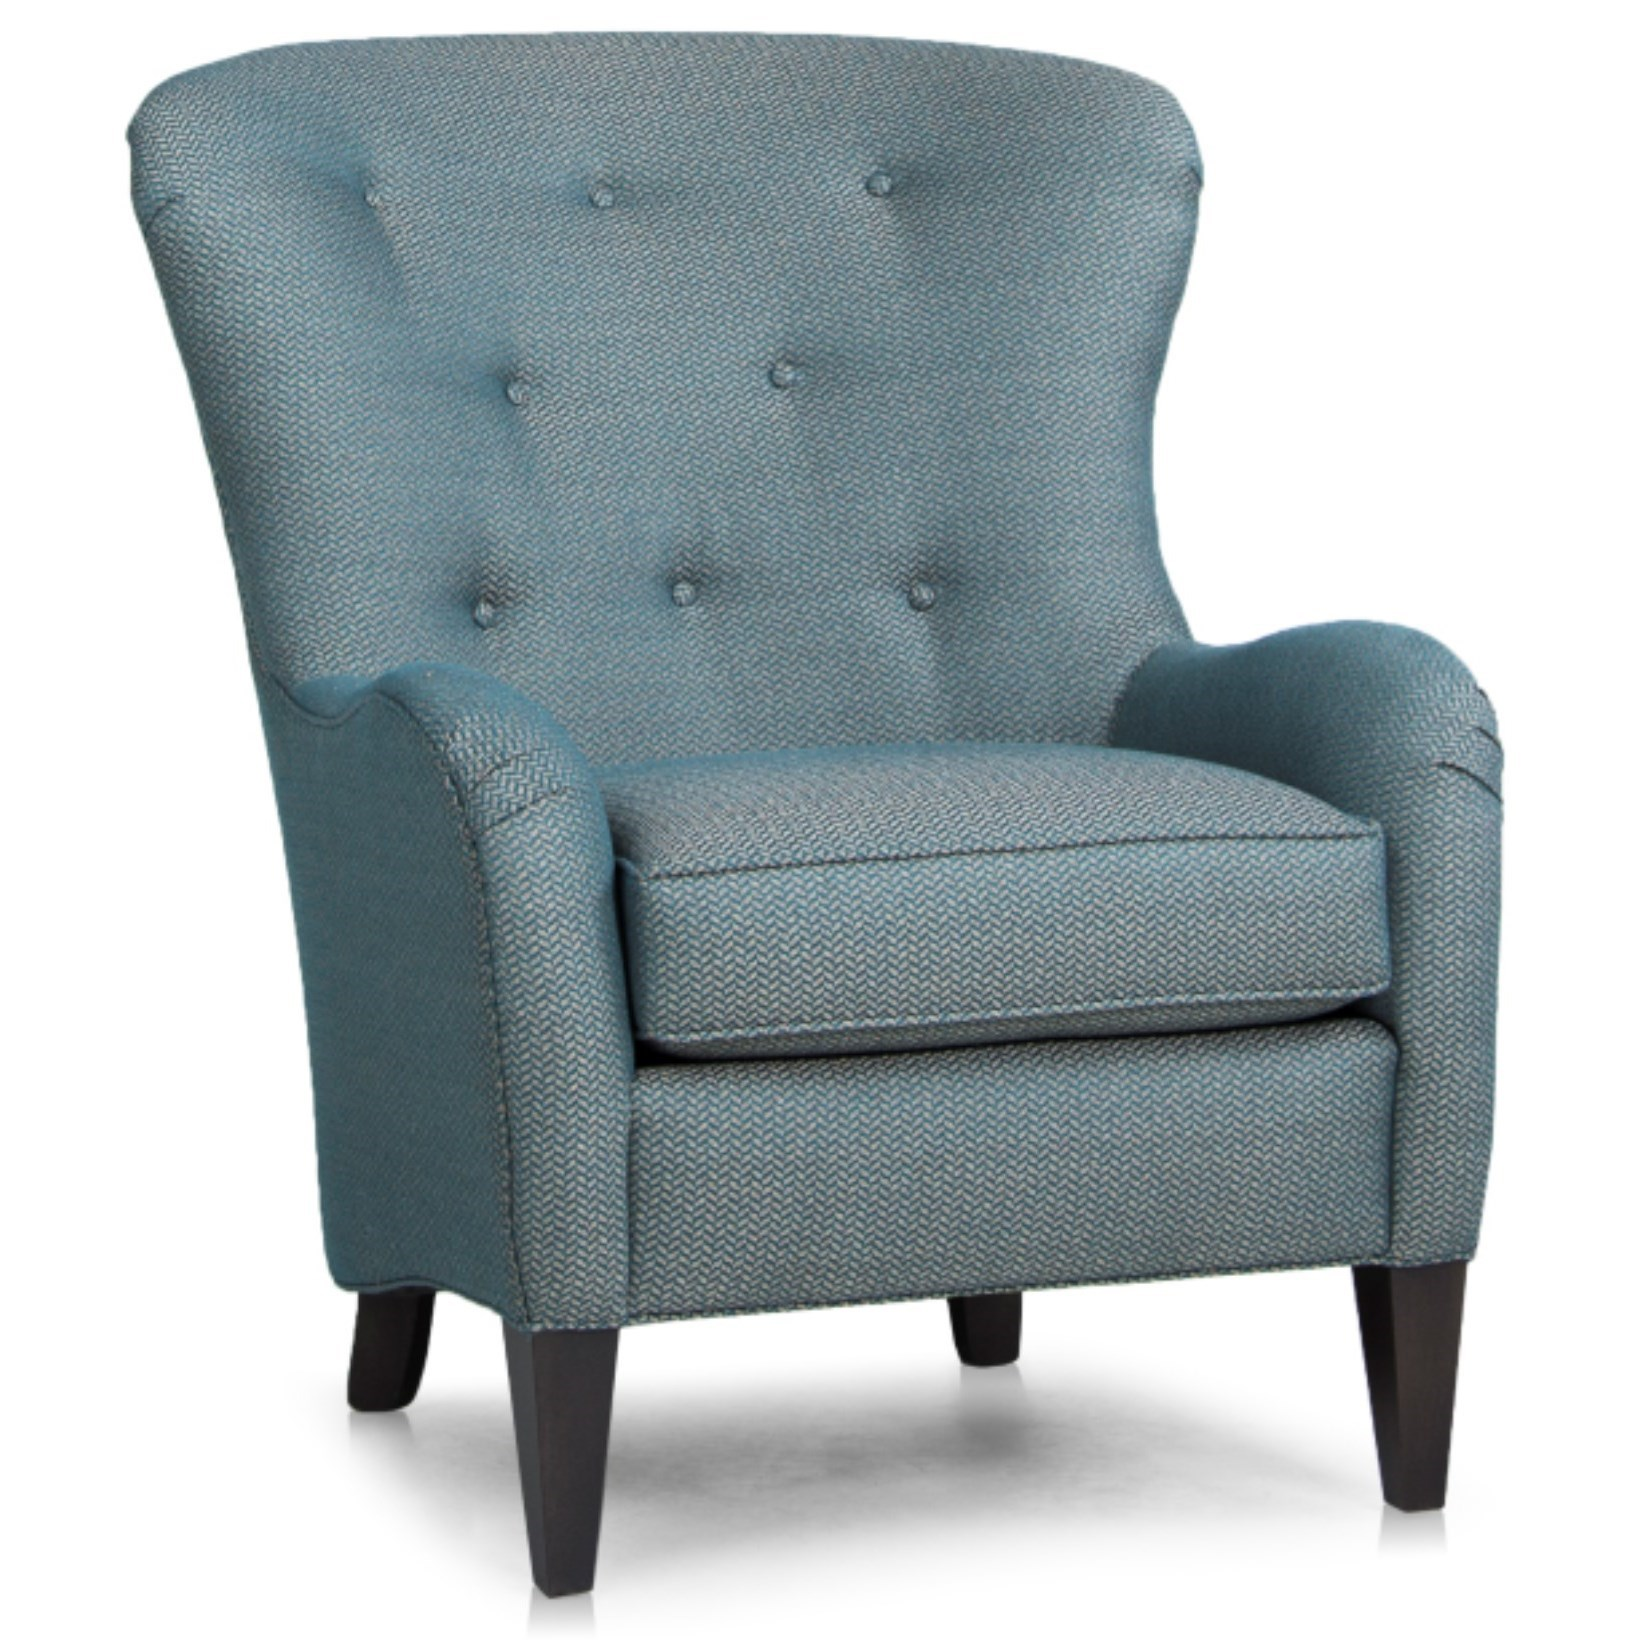 502 Style Group Chair by Smith Brothers at Miller Home